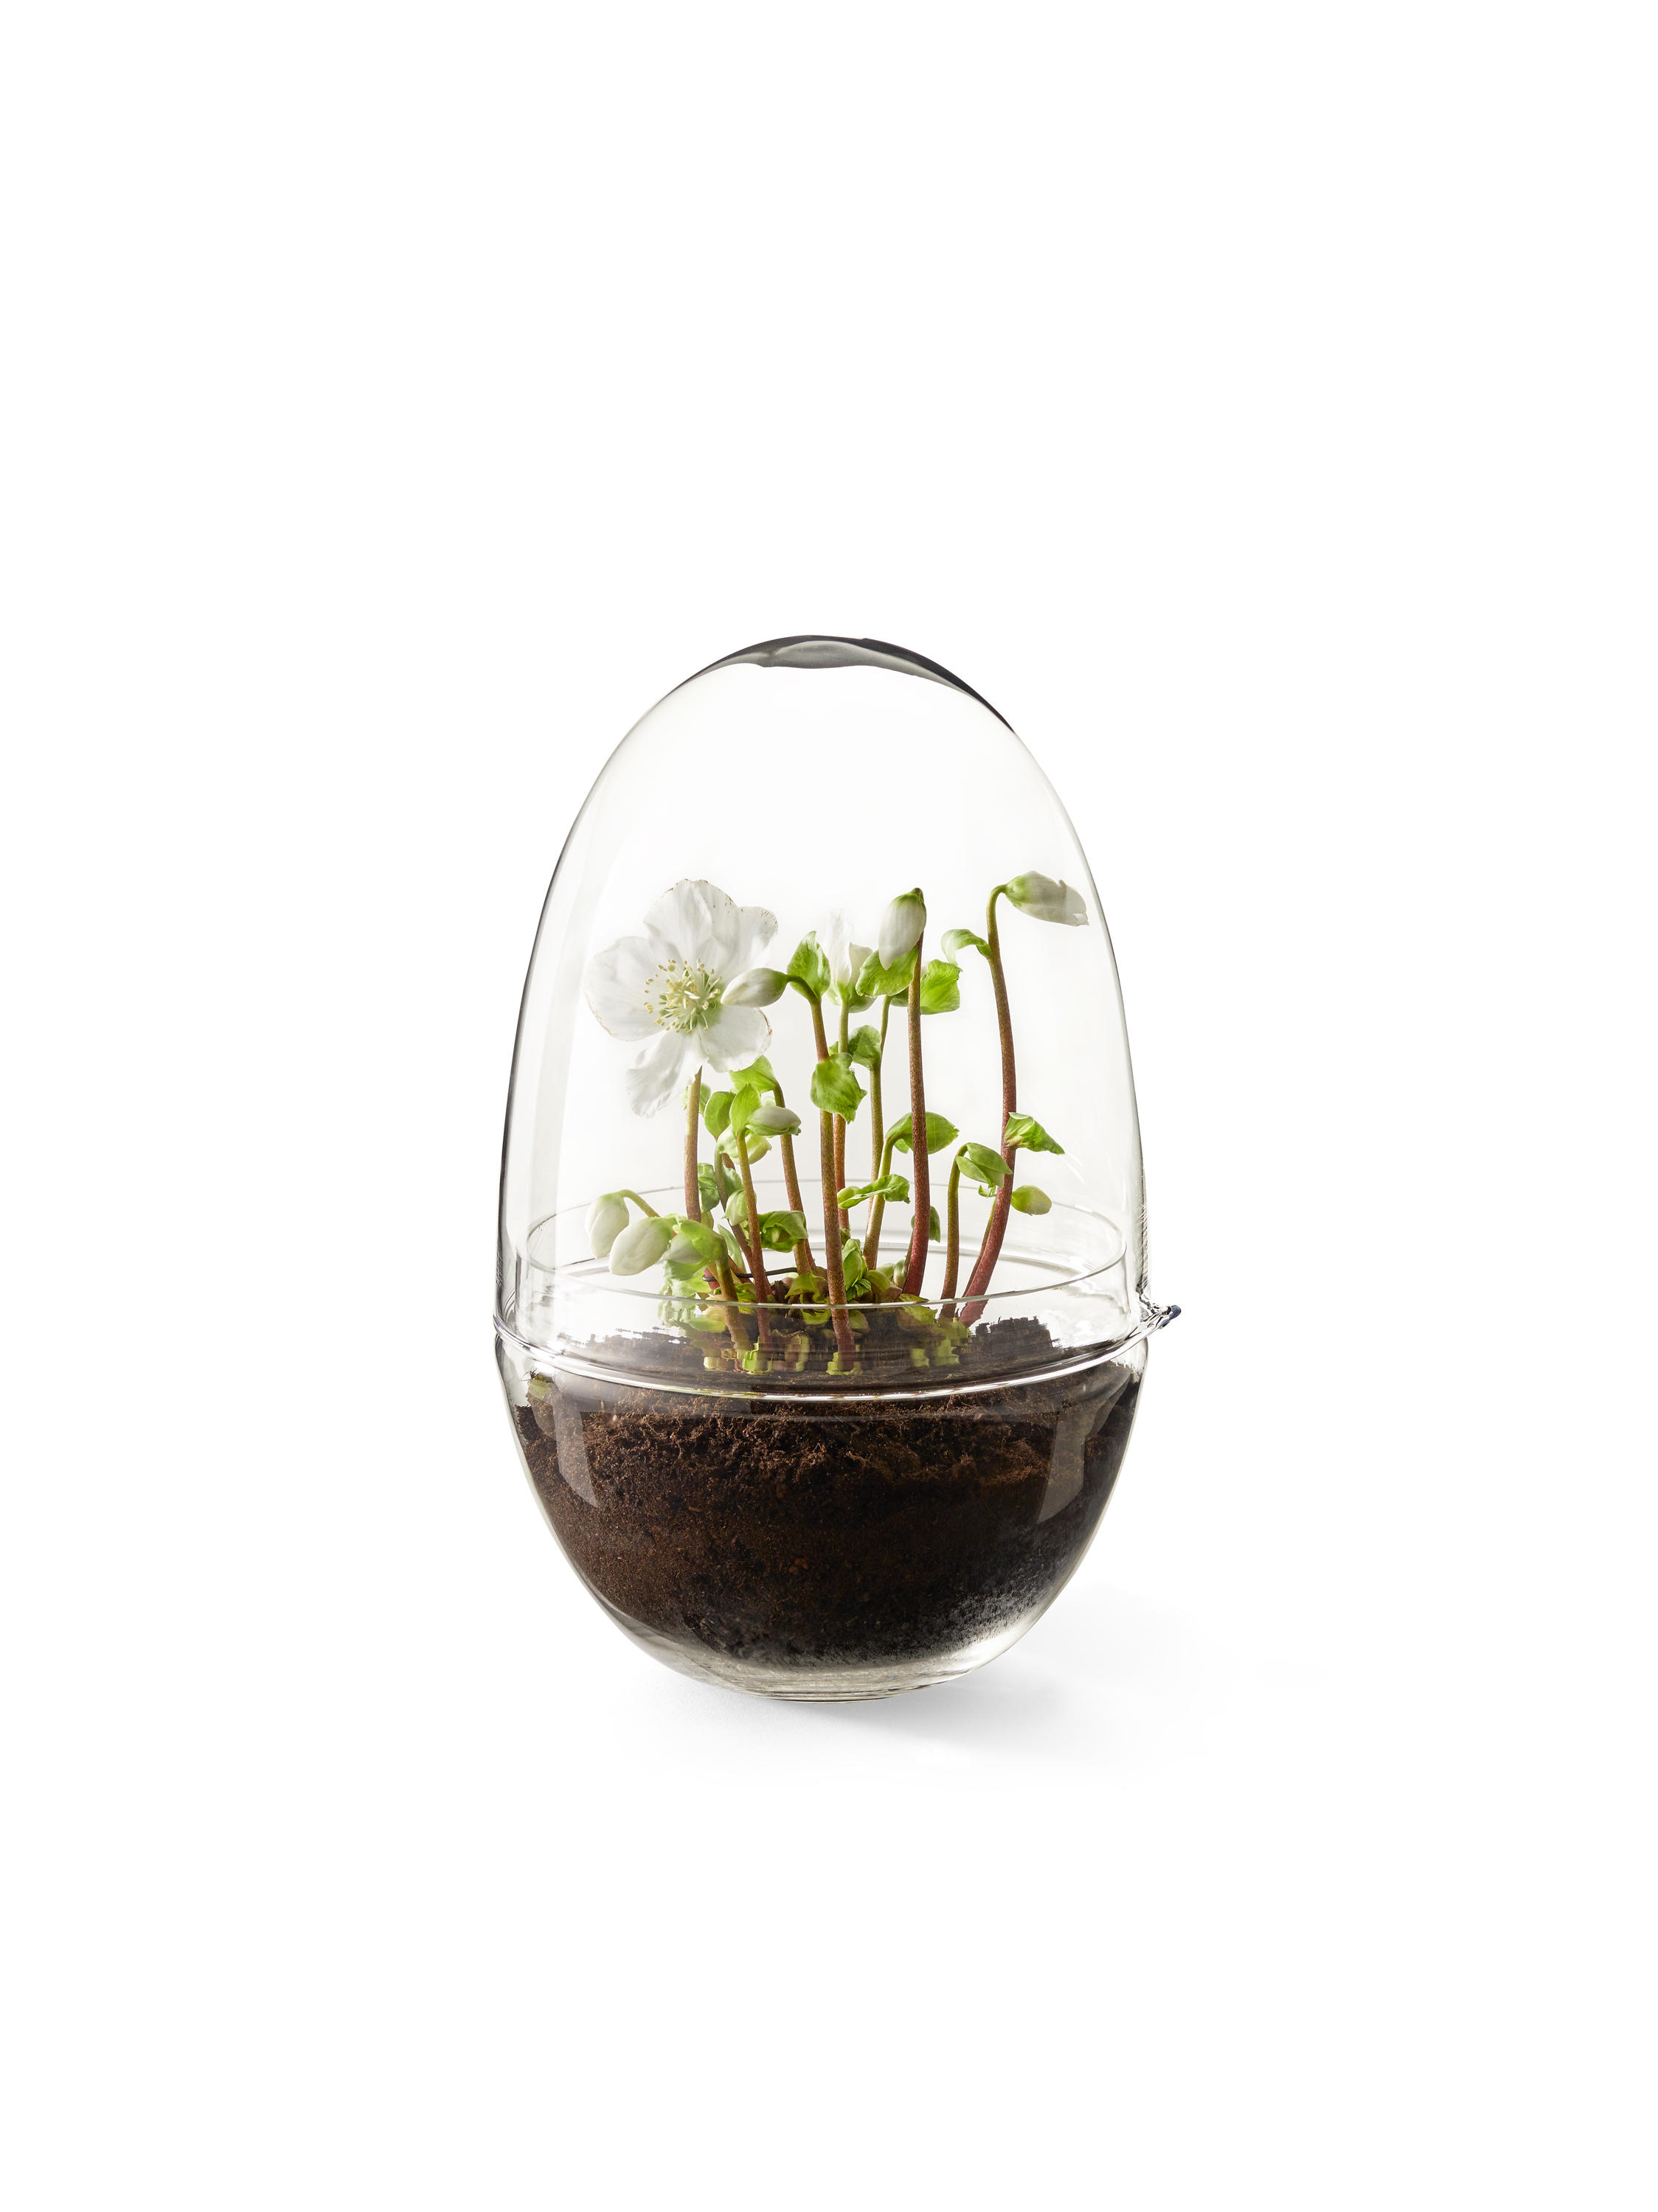 grow greenhouse x large plant pots from design house stockholm